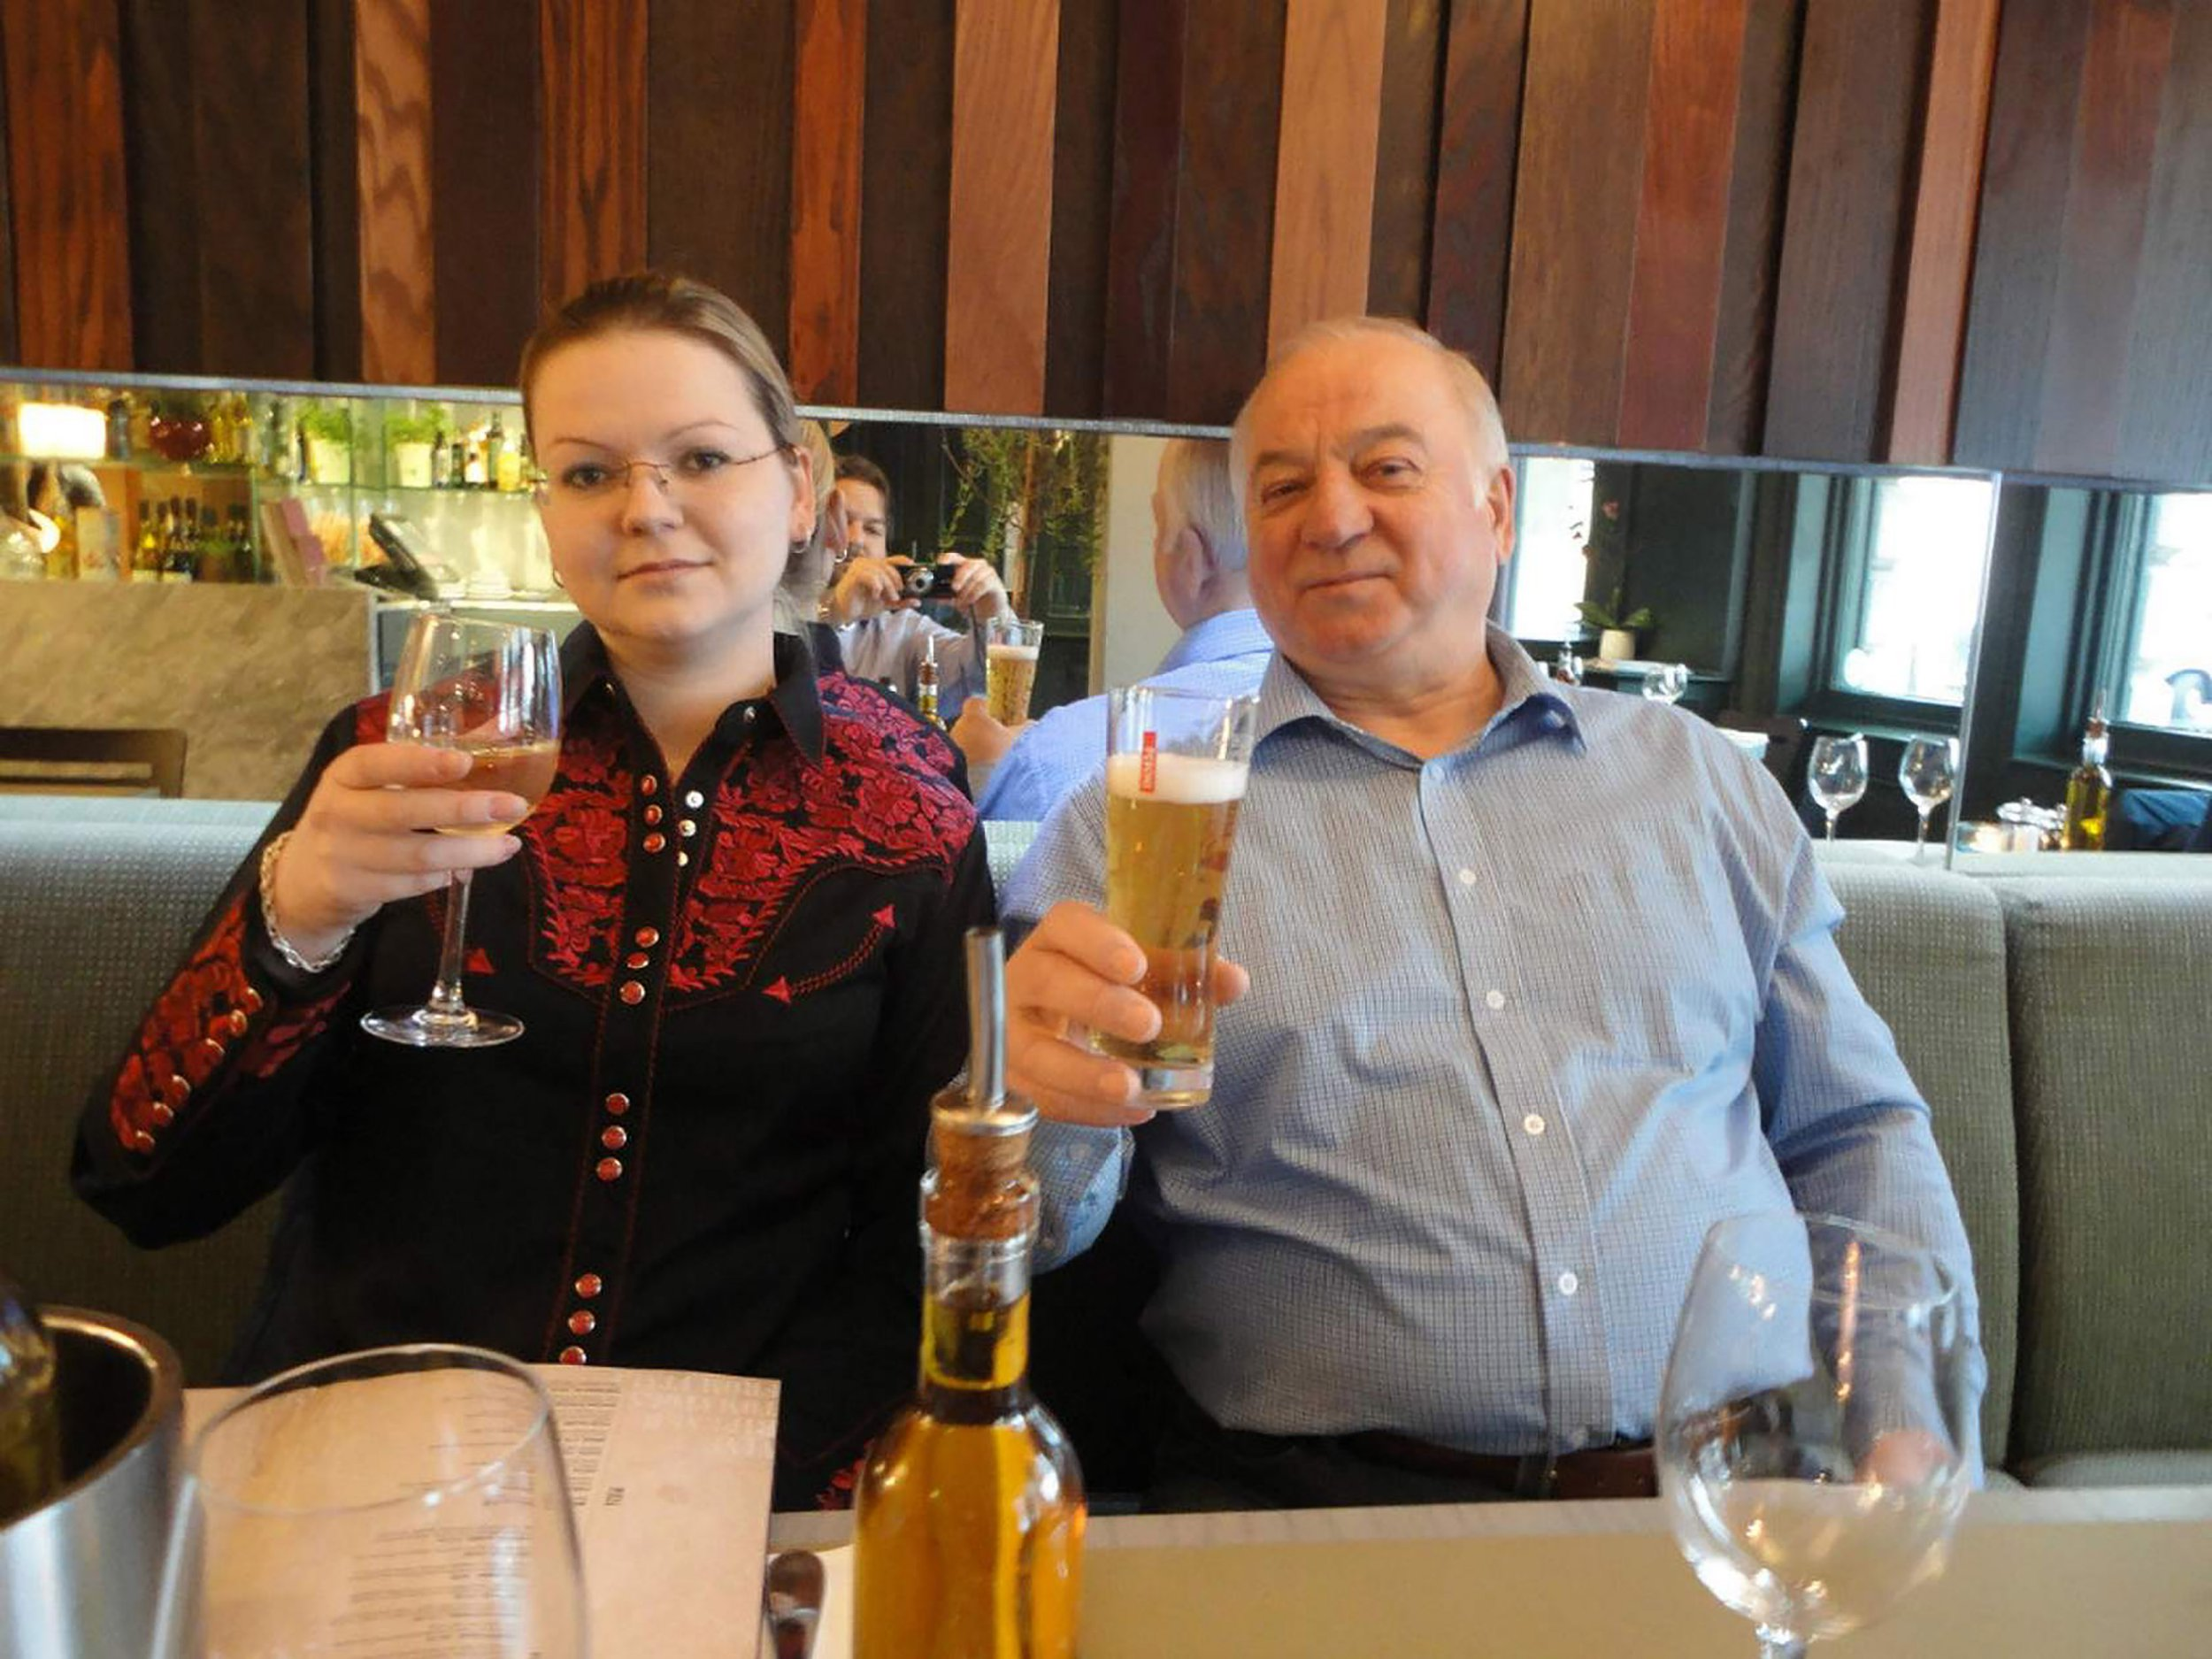 Sergei Skripal with his daughter Yulia.